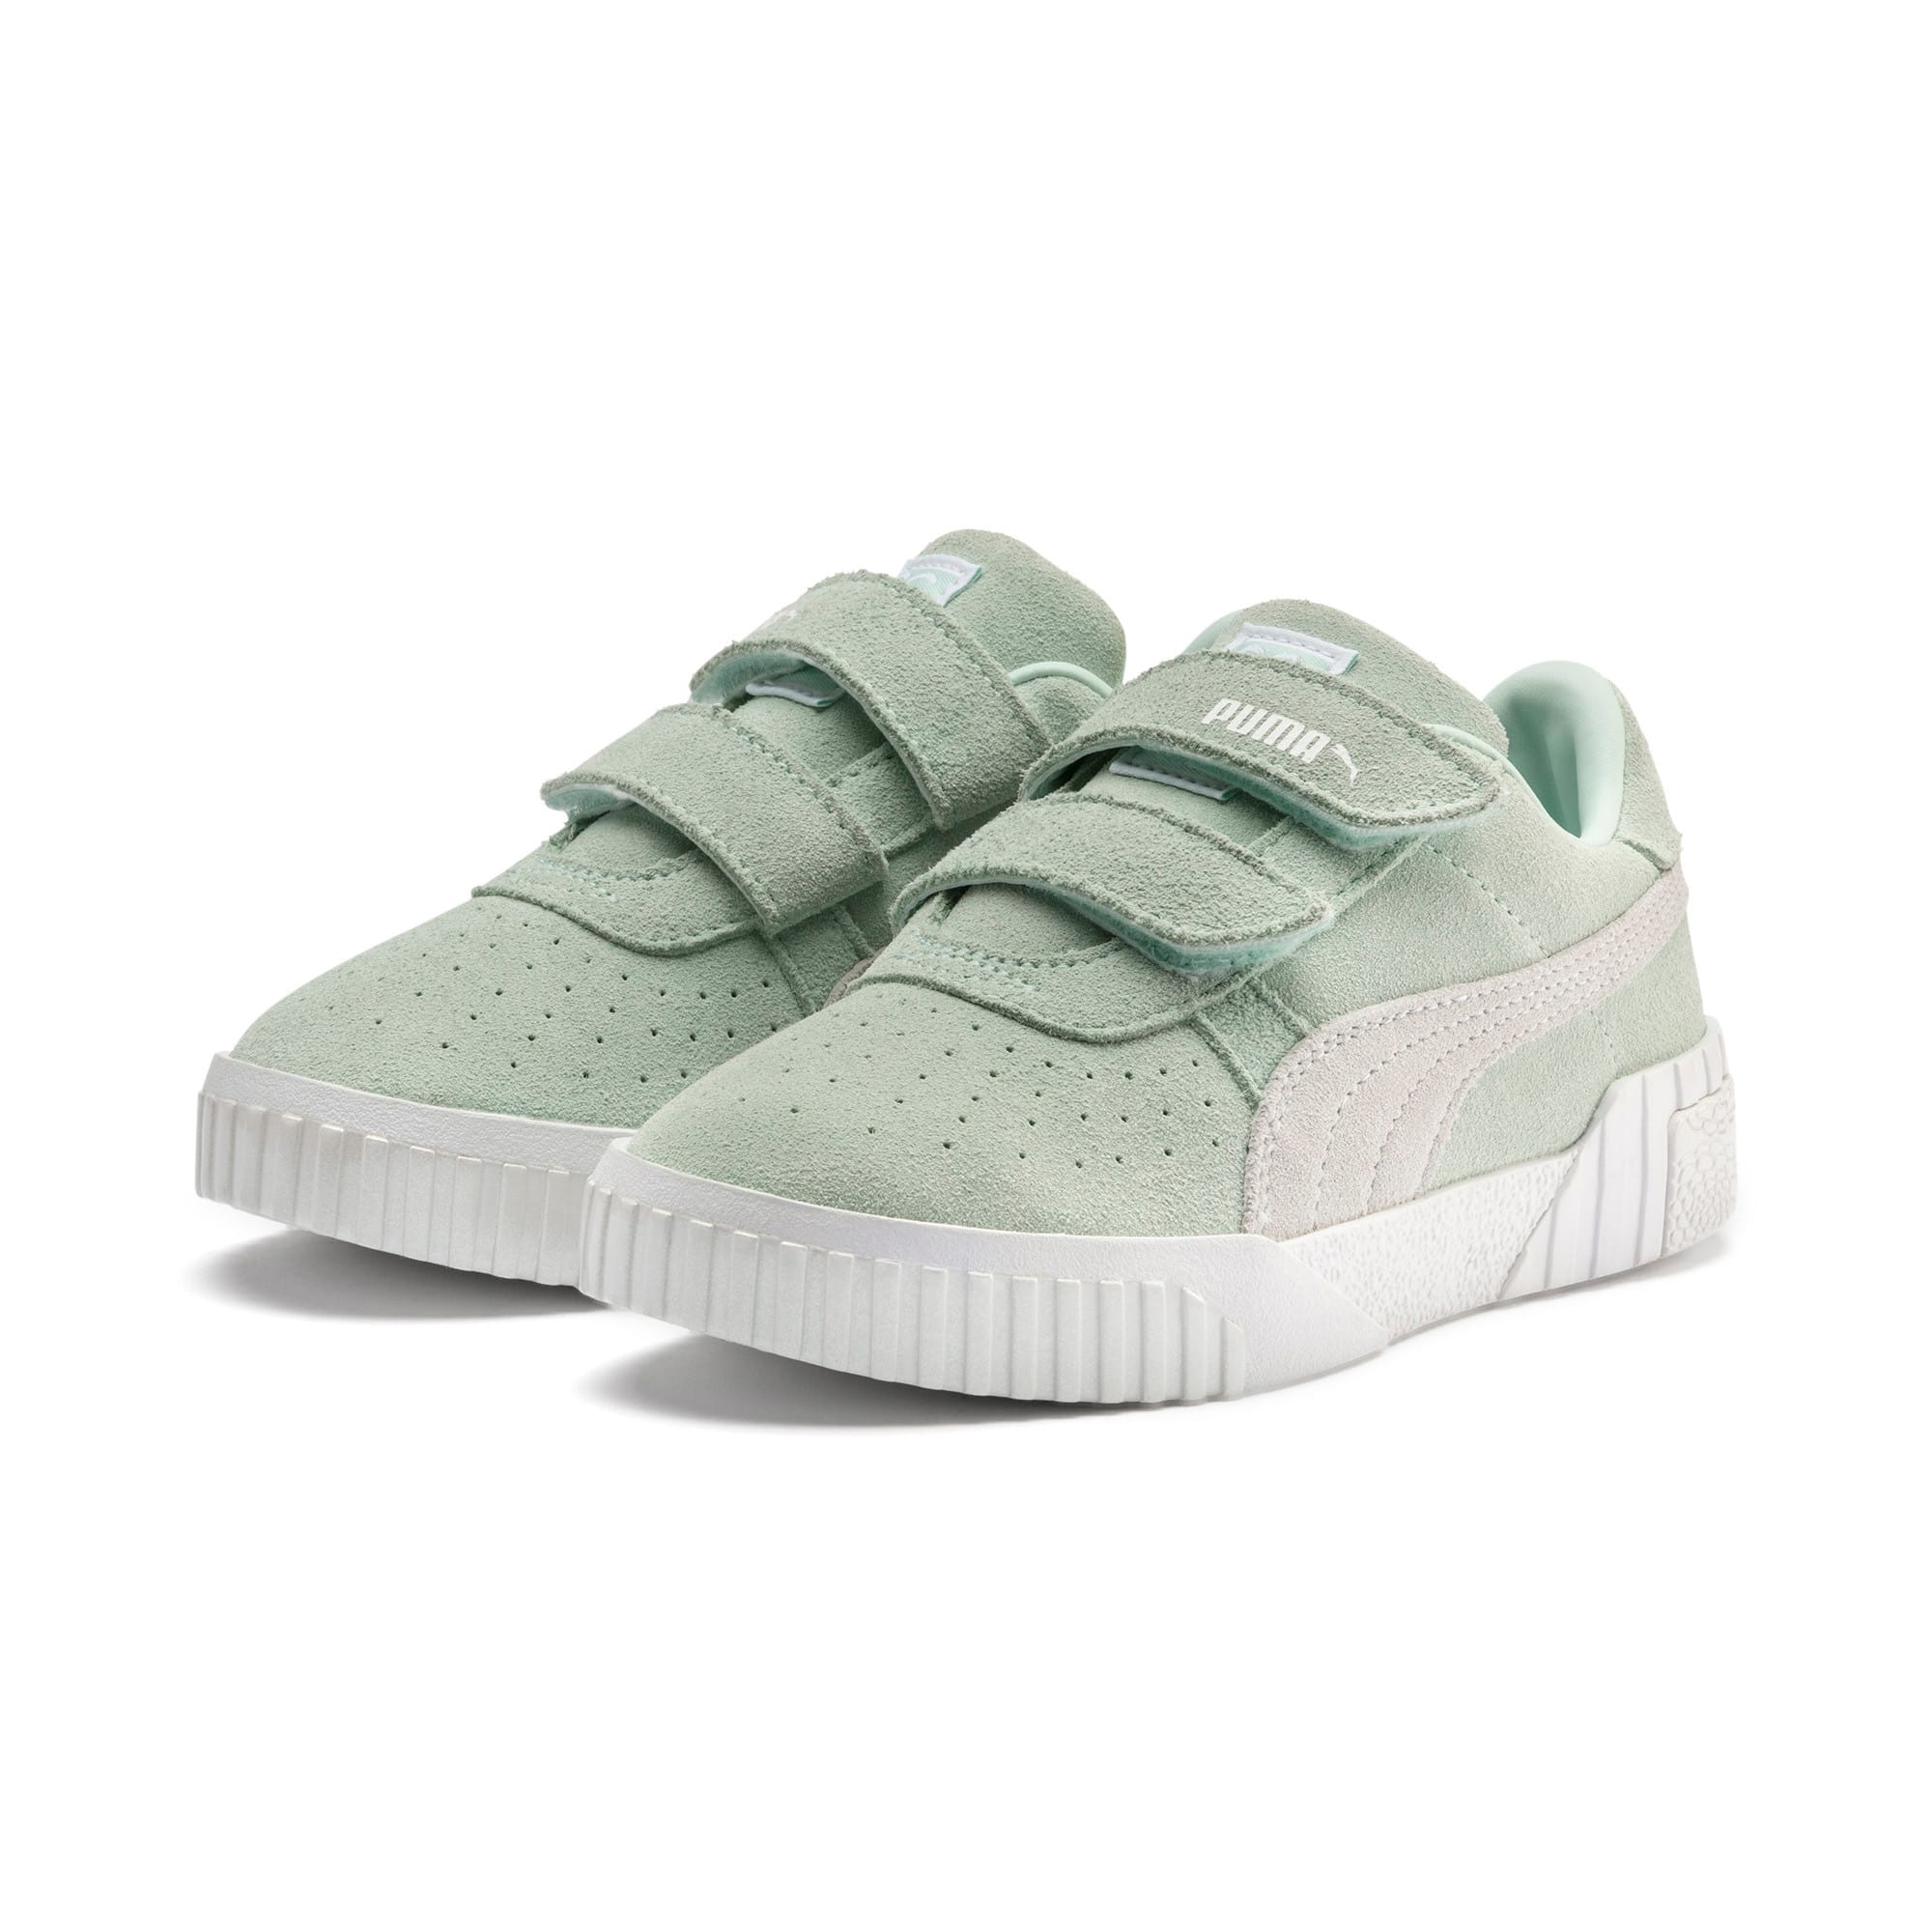 Thumbnail 2 of PUMA x Selena Gomez Kids' Cali Patent Trainers, Fair Aqua-Puma White, medium